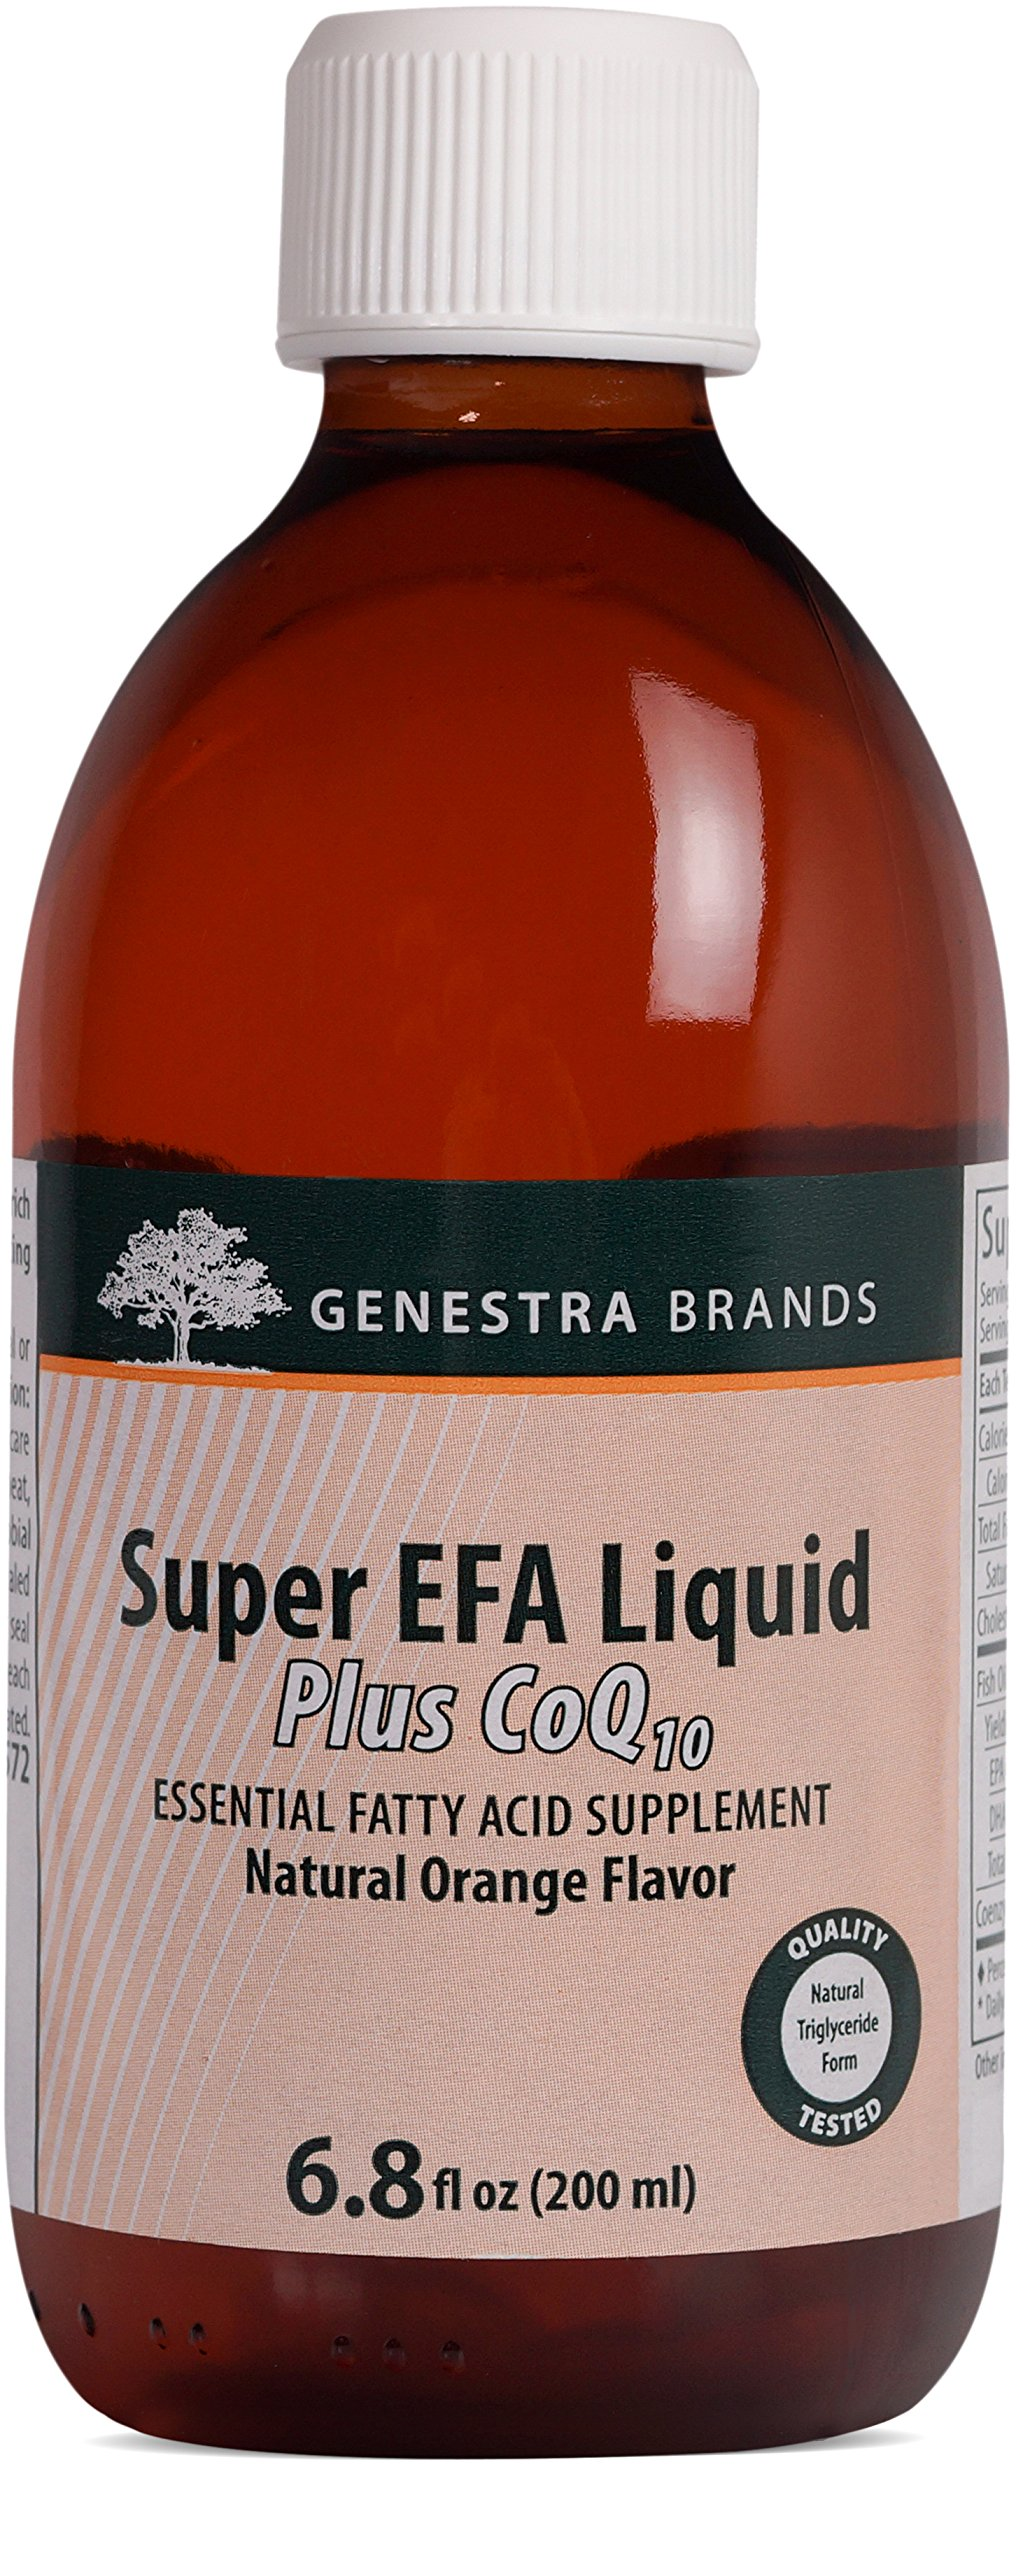 Genestra Brands - Super EFA Liquid Plus CoQ10 - Essential Fatty Acid Formula to Support Cardiovascular Health* - 6.8 fl oz (200 ml) by Genestra Brands (Image #1)